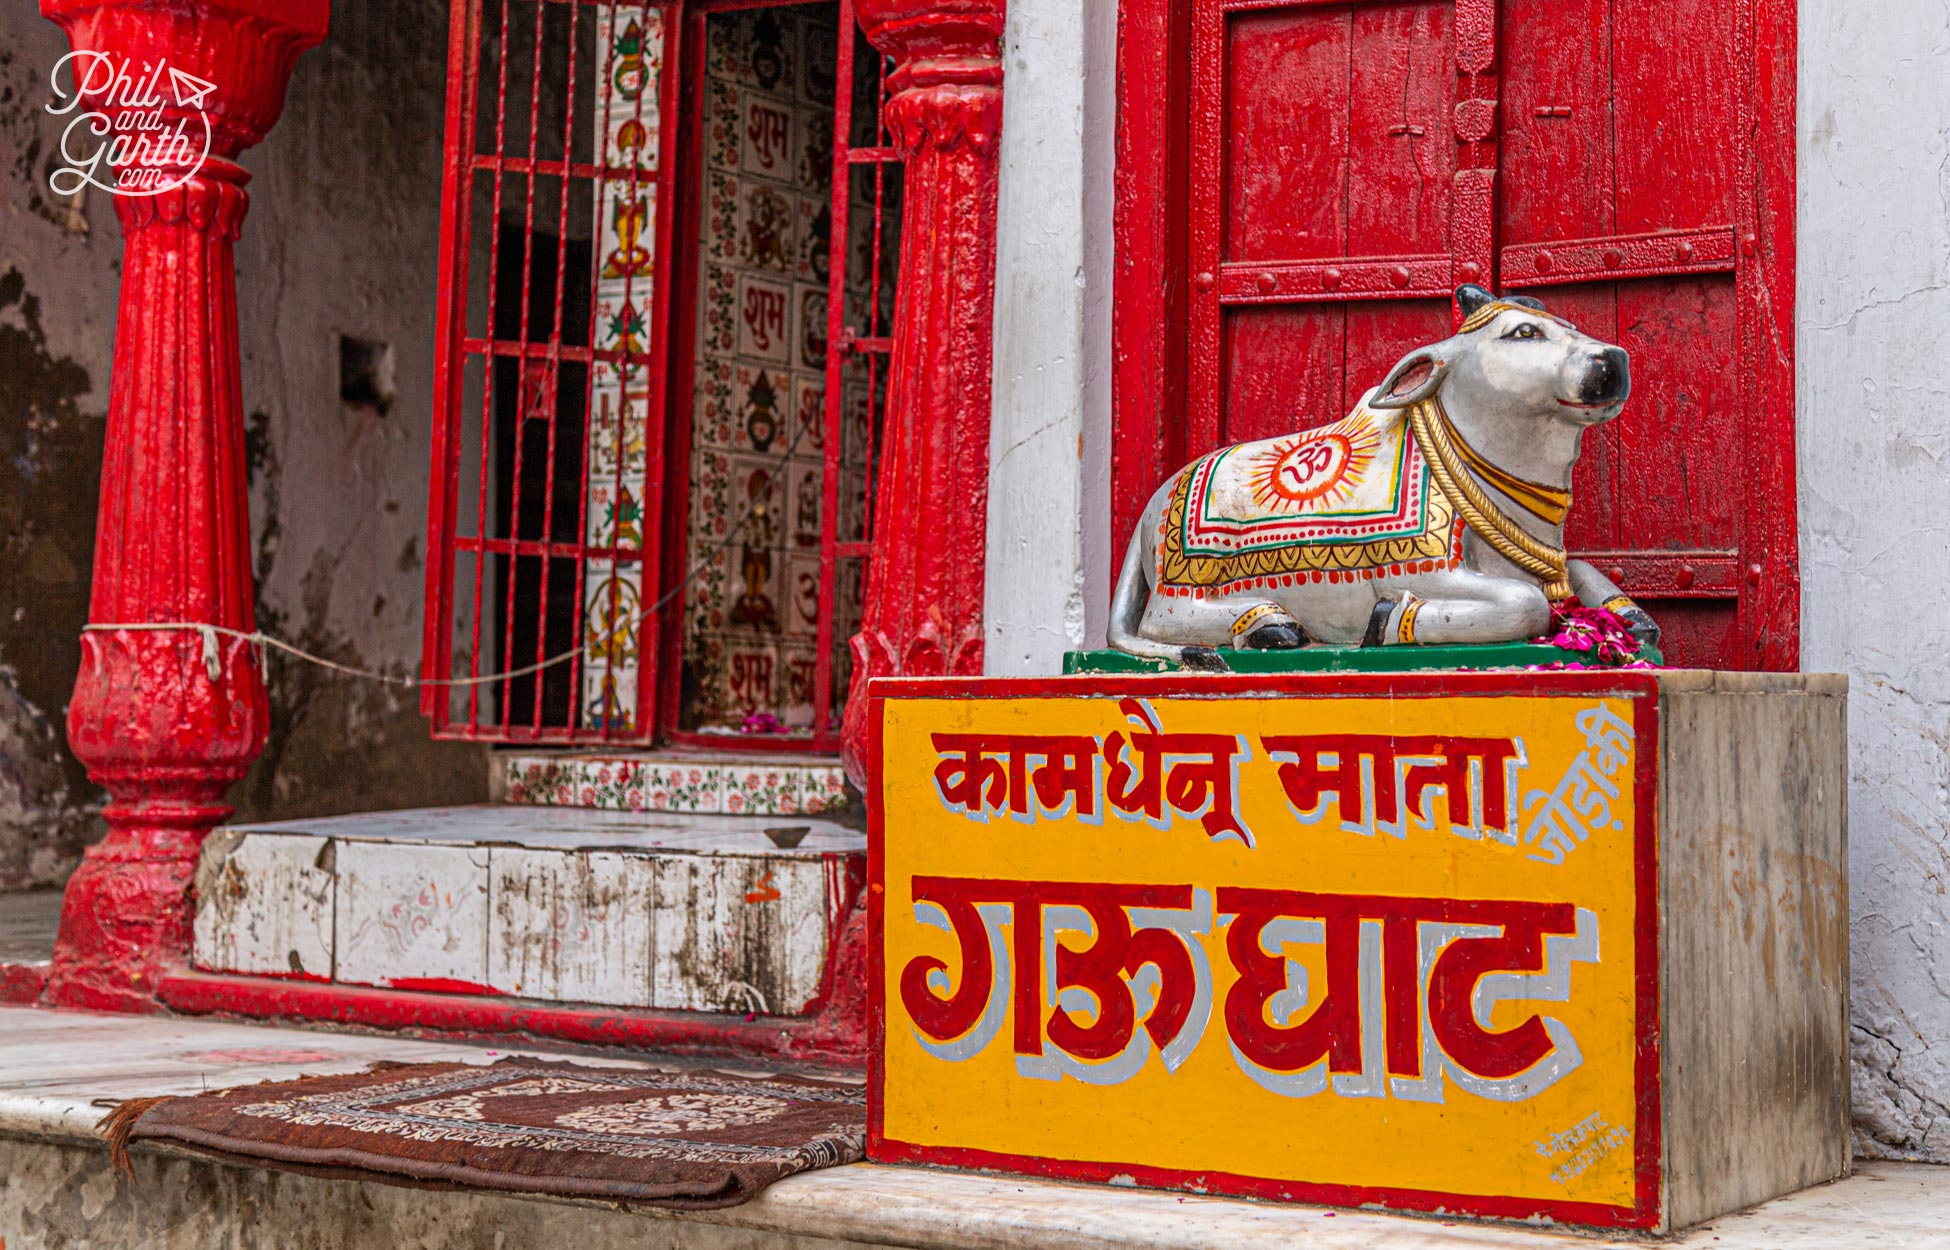 The 'mother of all cows' welcomes you to the Kamdhenu Mata Gau Ghat. Also known as the Gandhi Ghat